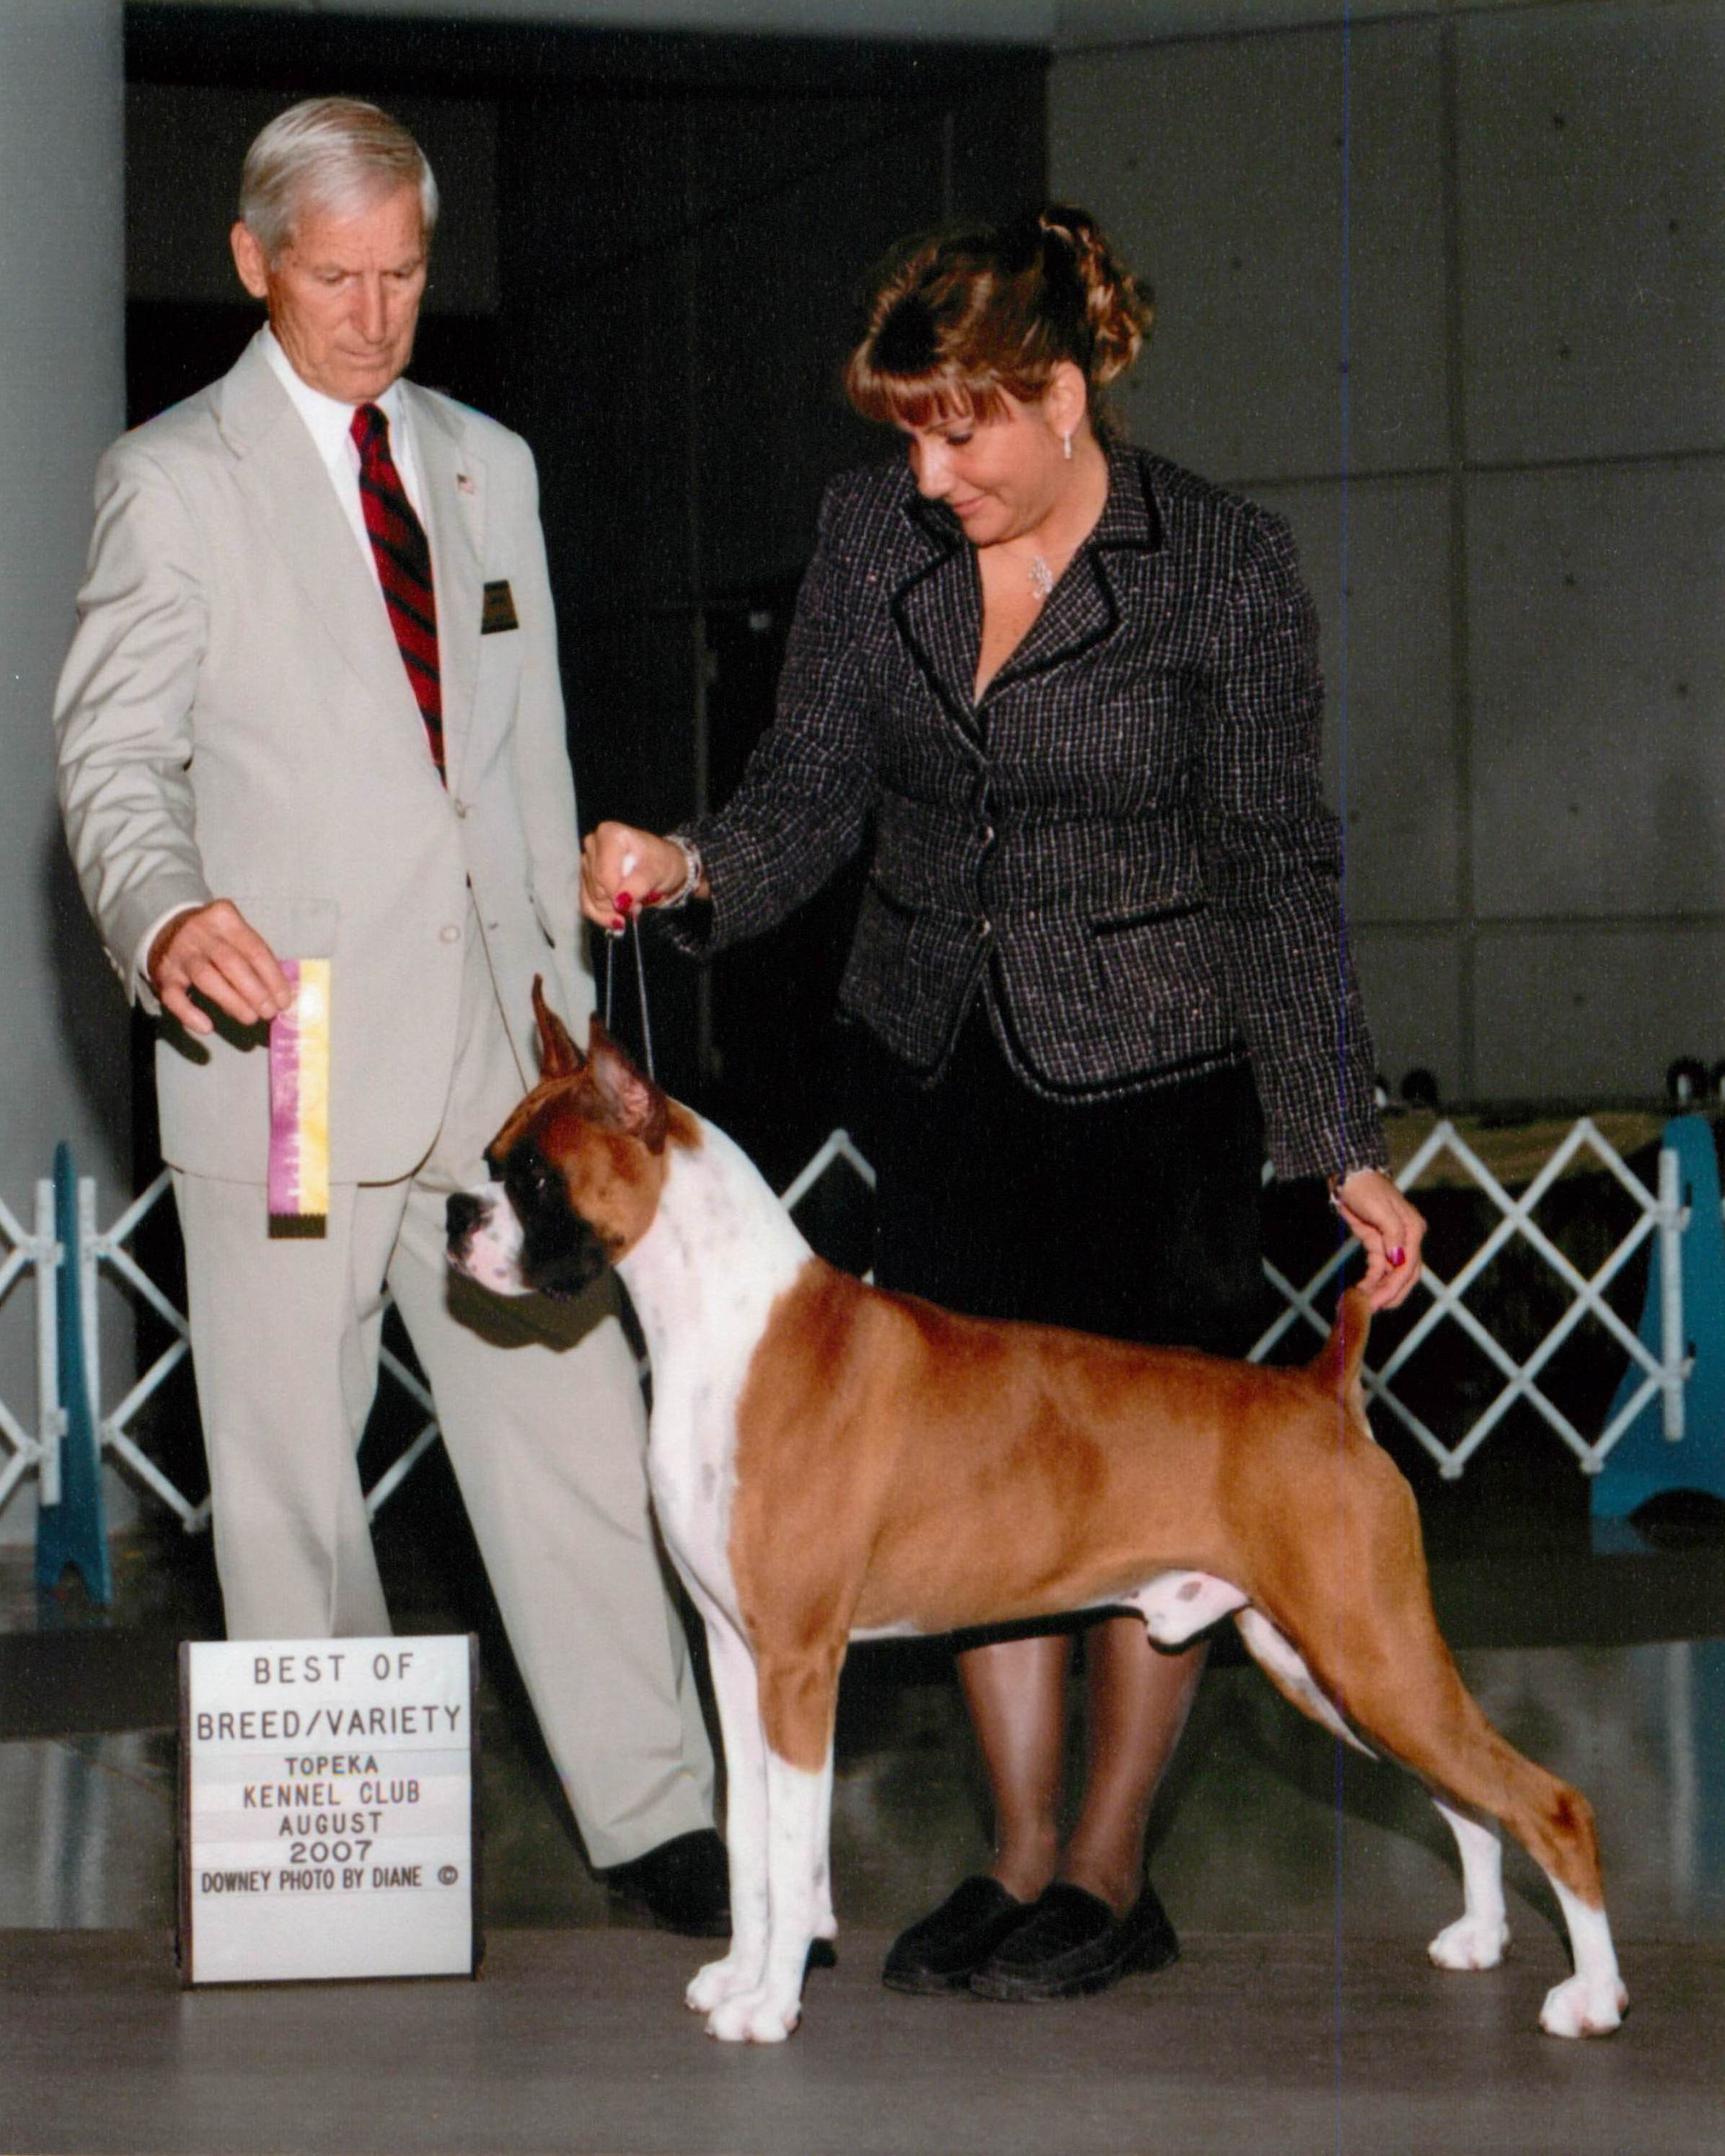 Best of Breed @ 2007 Specialty Show #2